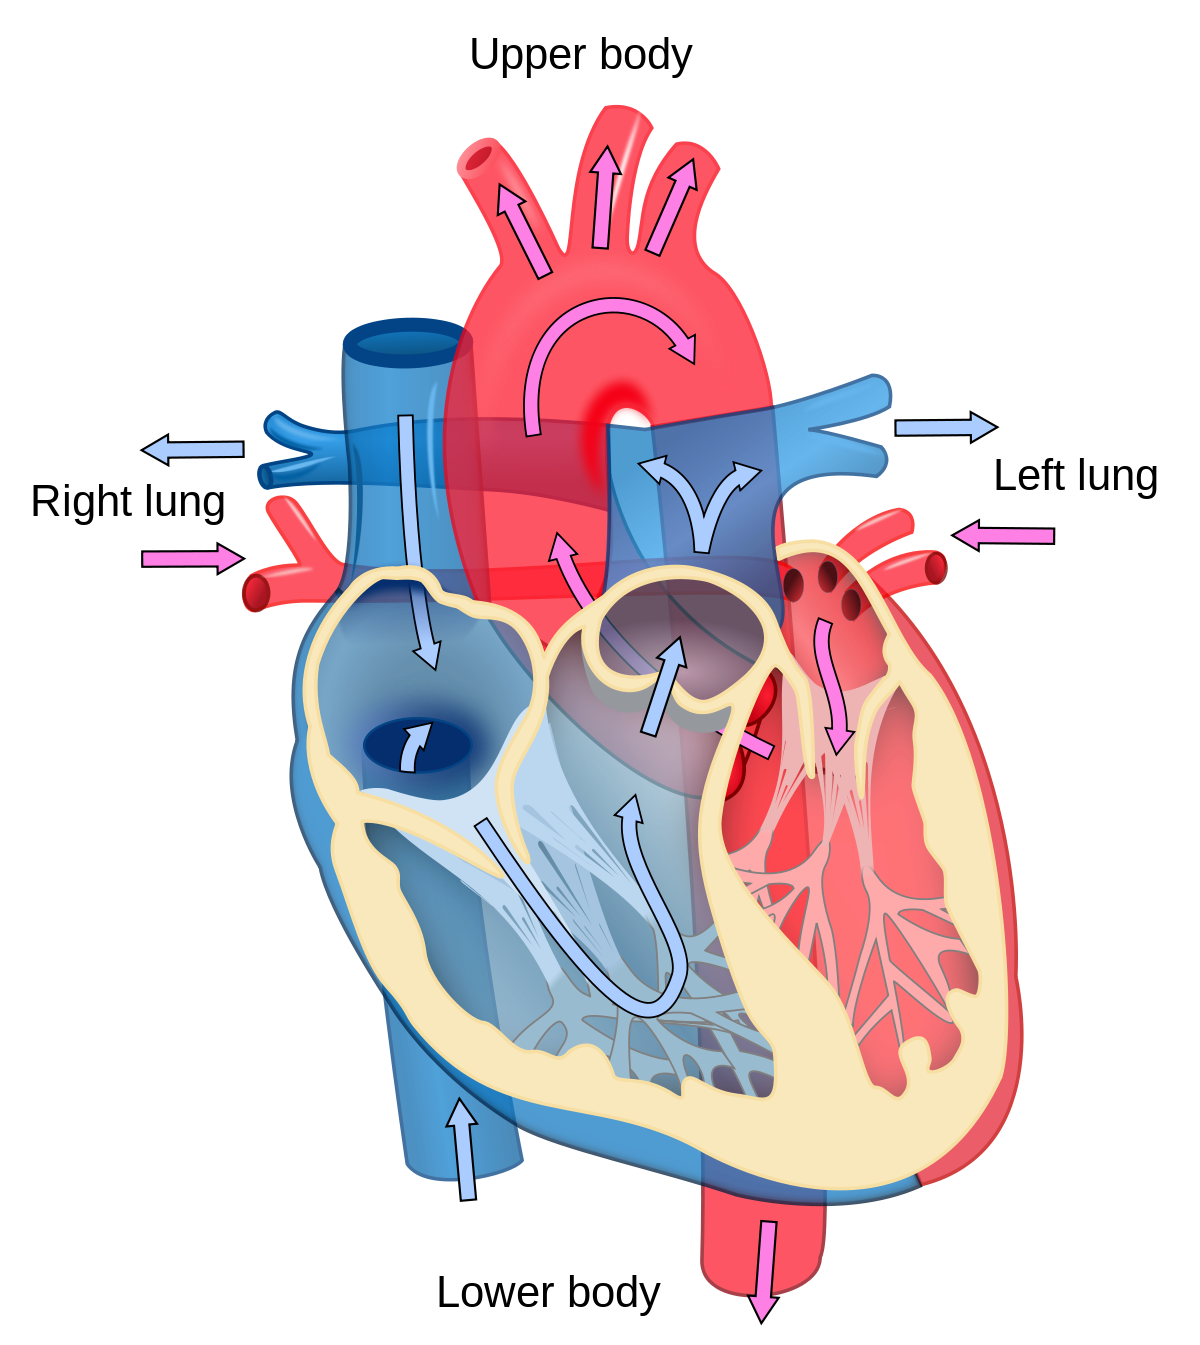 Tired clipart rapid breathing. Cardiology wikipedia